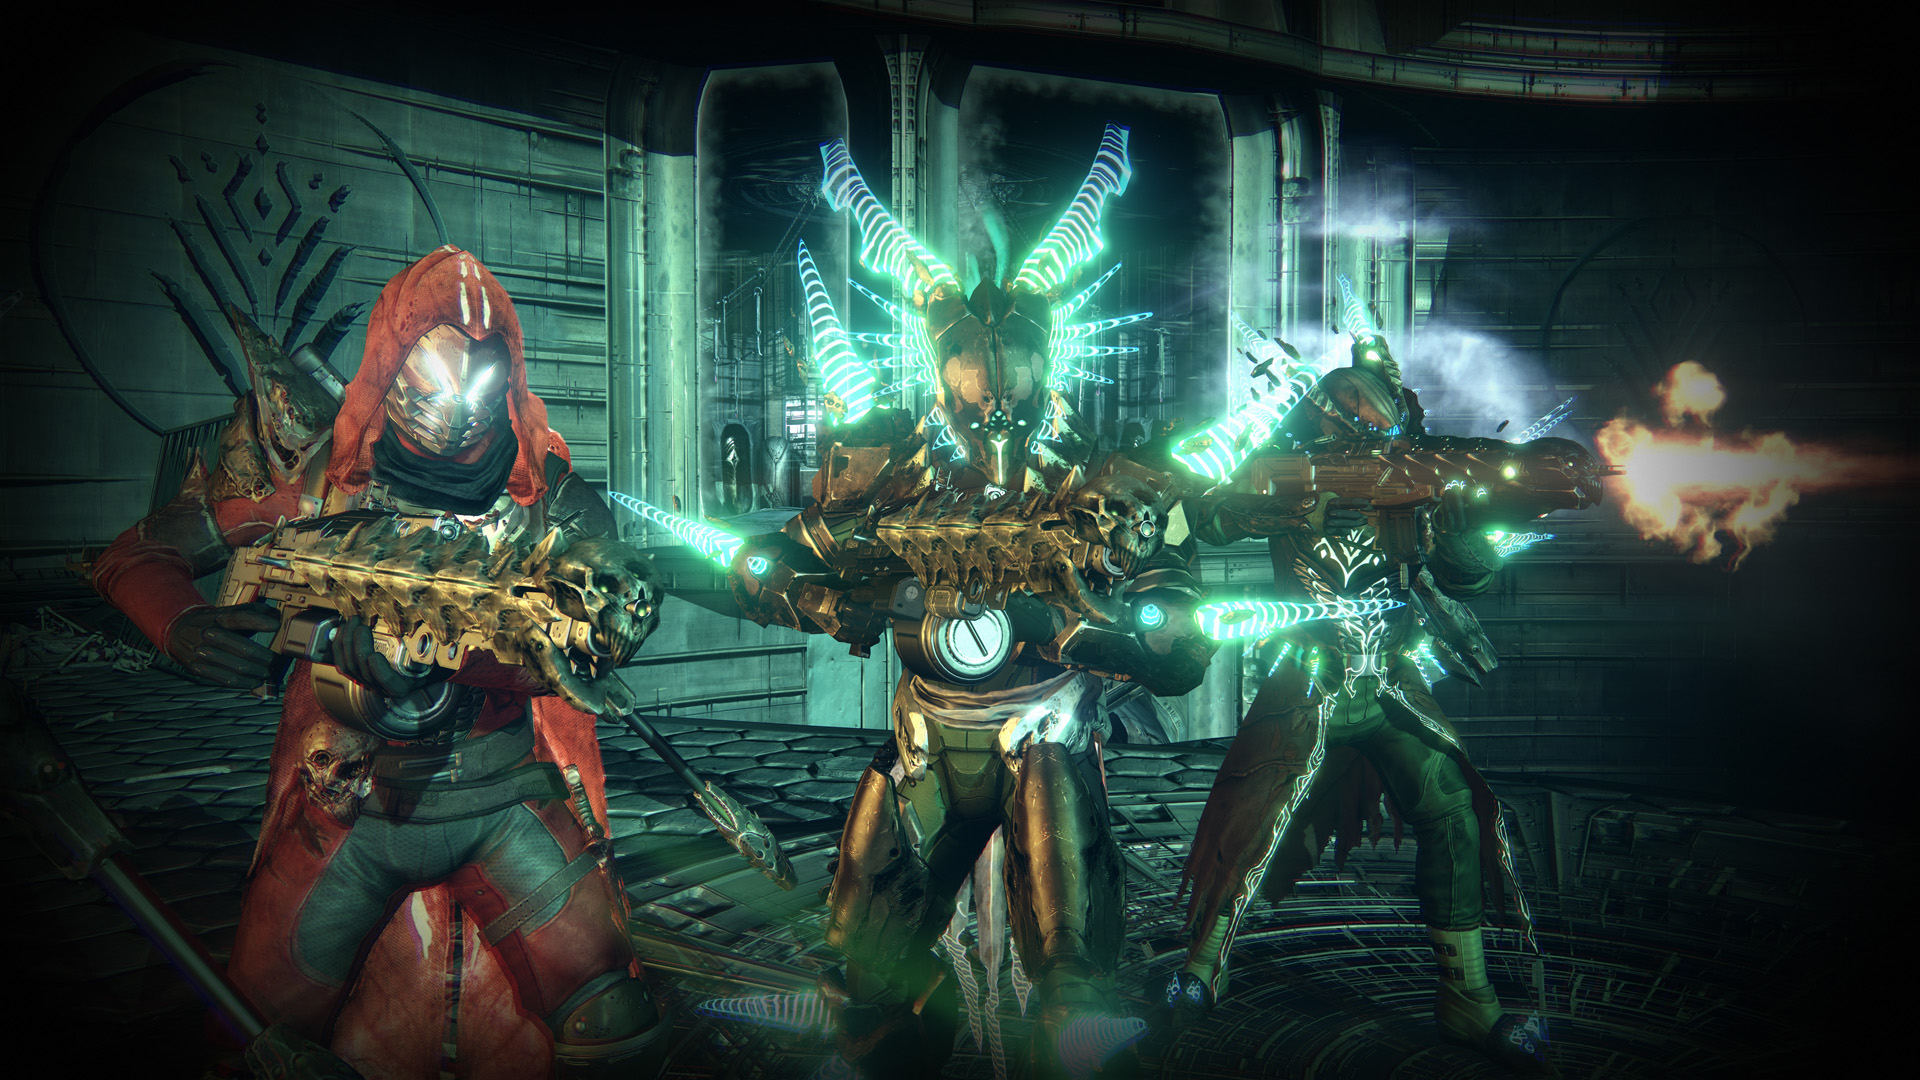 cd54745f43b Destiny  Age of Triumph - here s at look at Vault of Glass